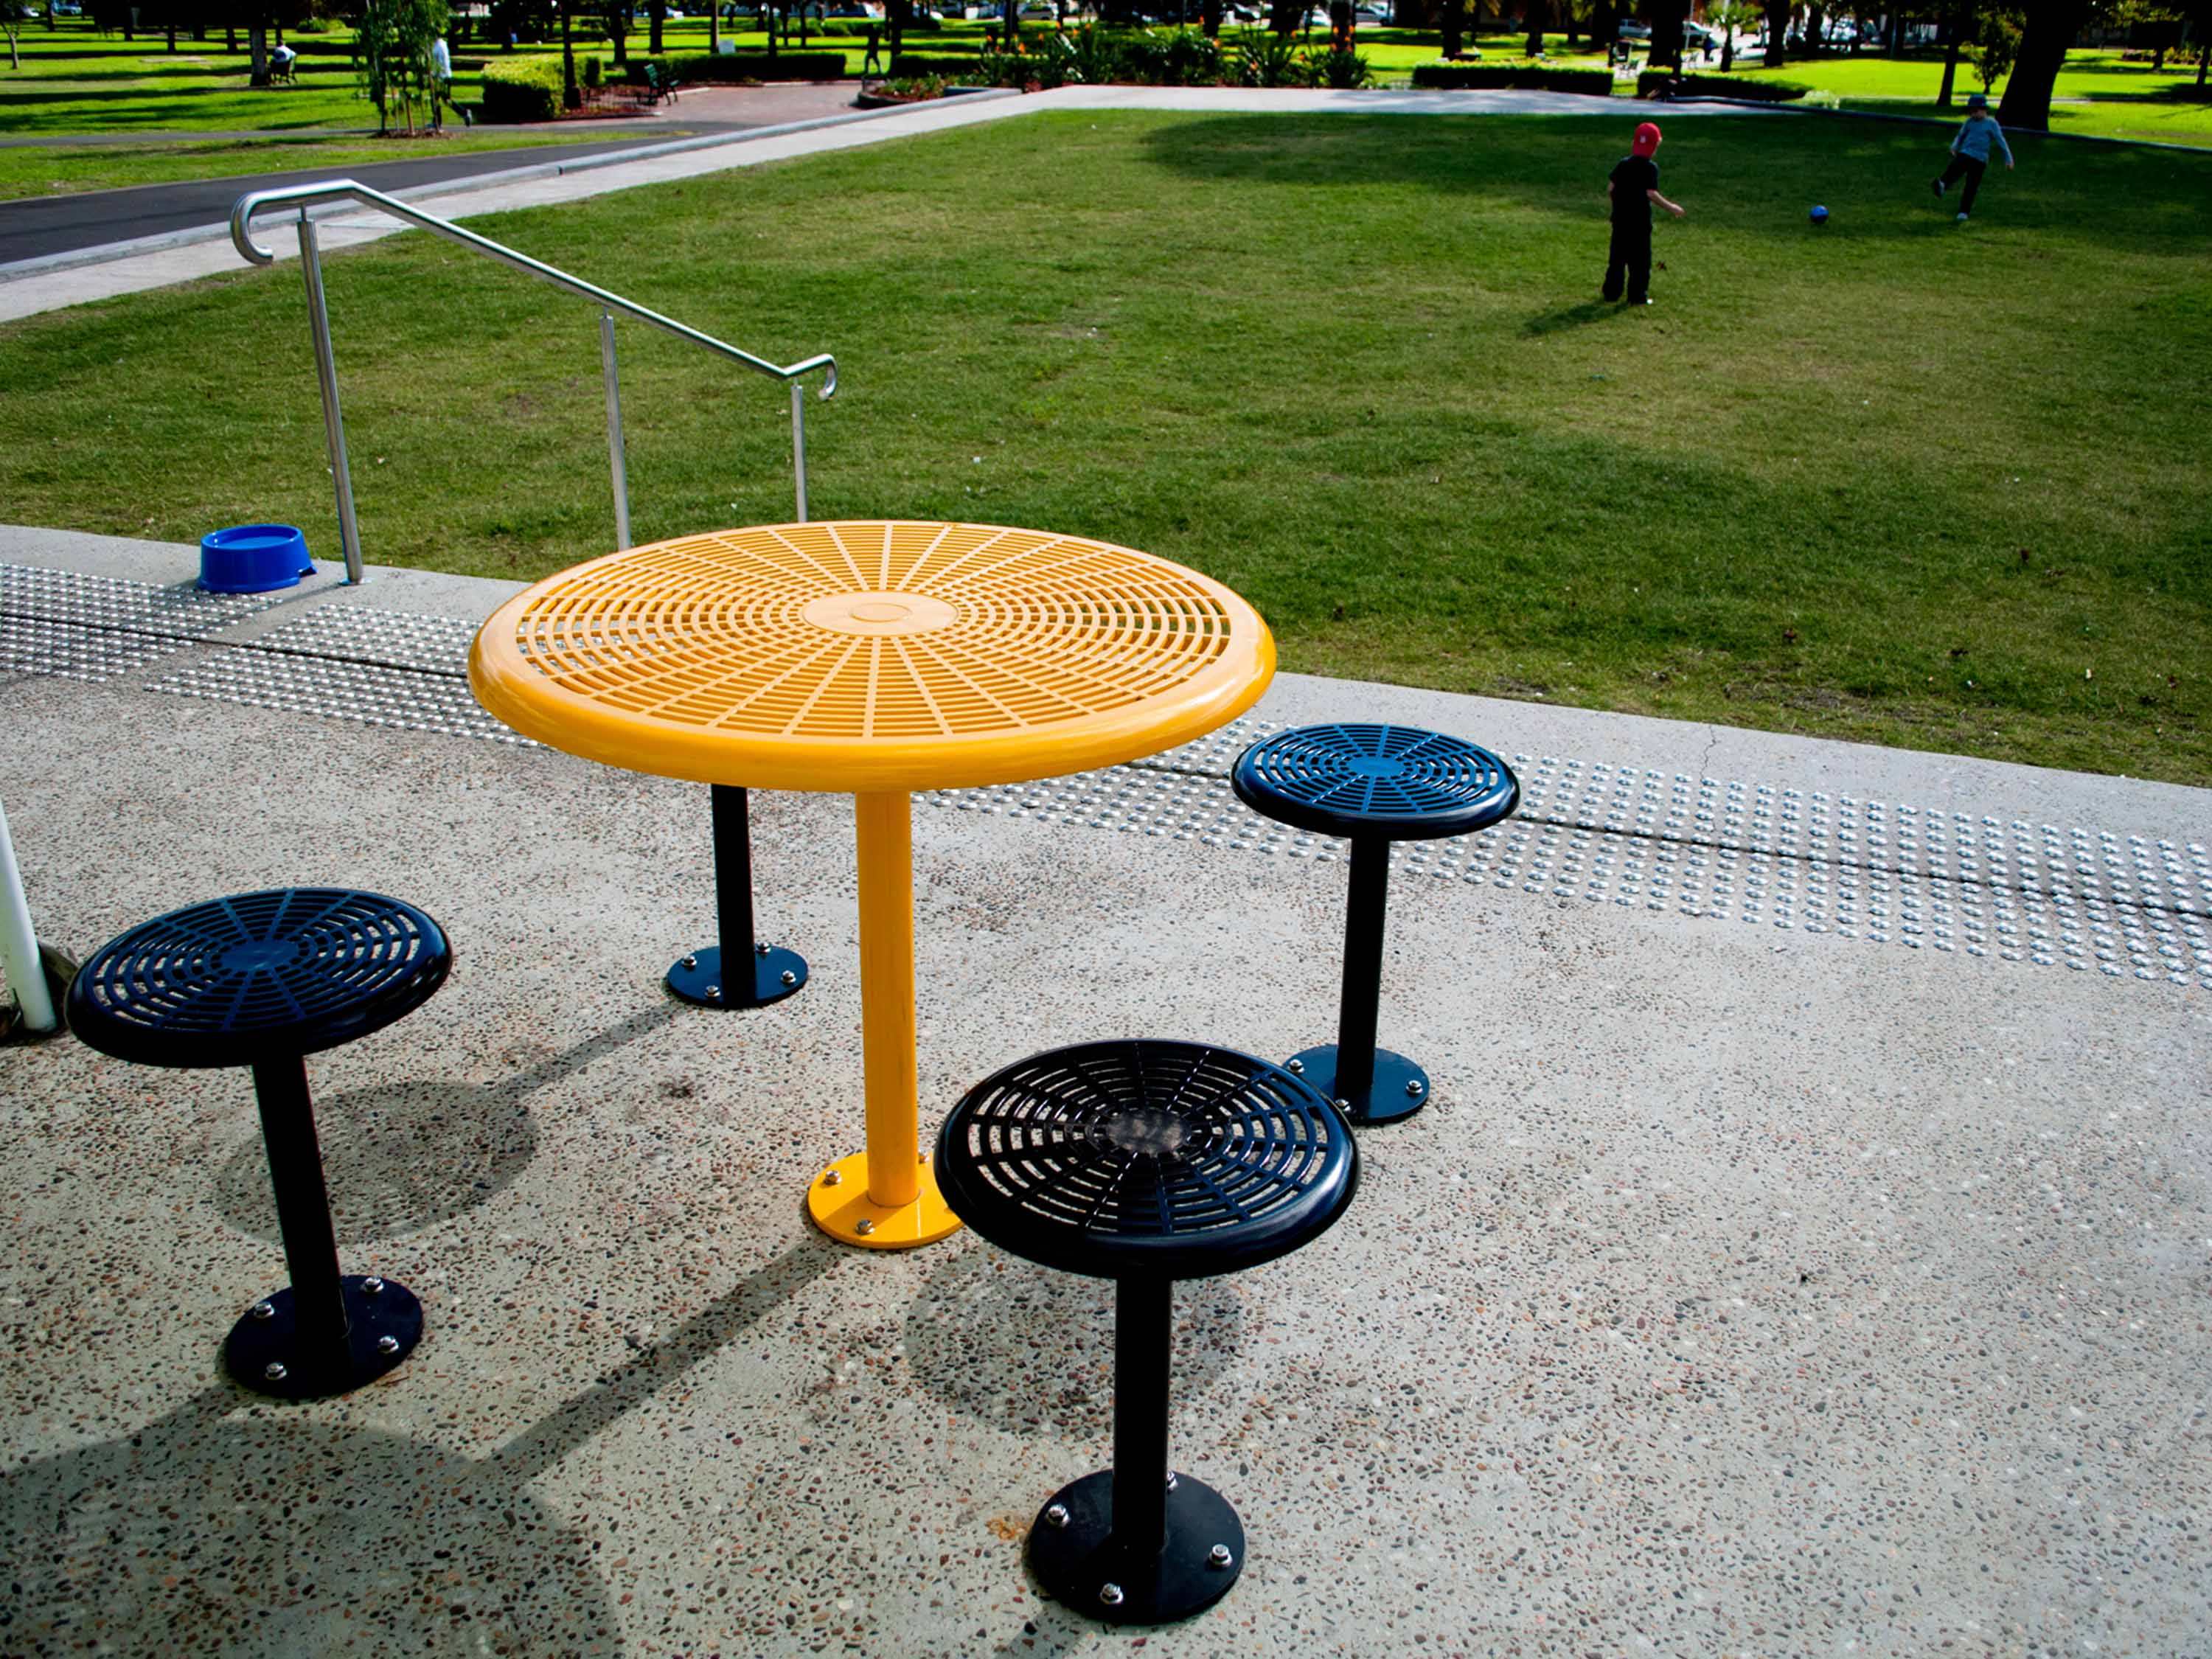 Round Safety Yellow Cafe Table and Black Cafe Stools with Surface-fixed Base Plate